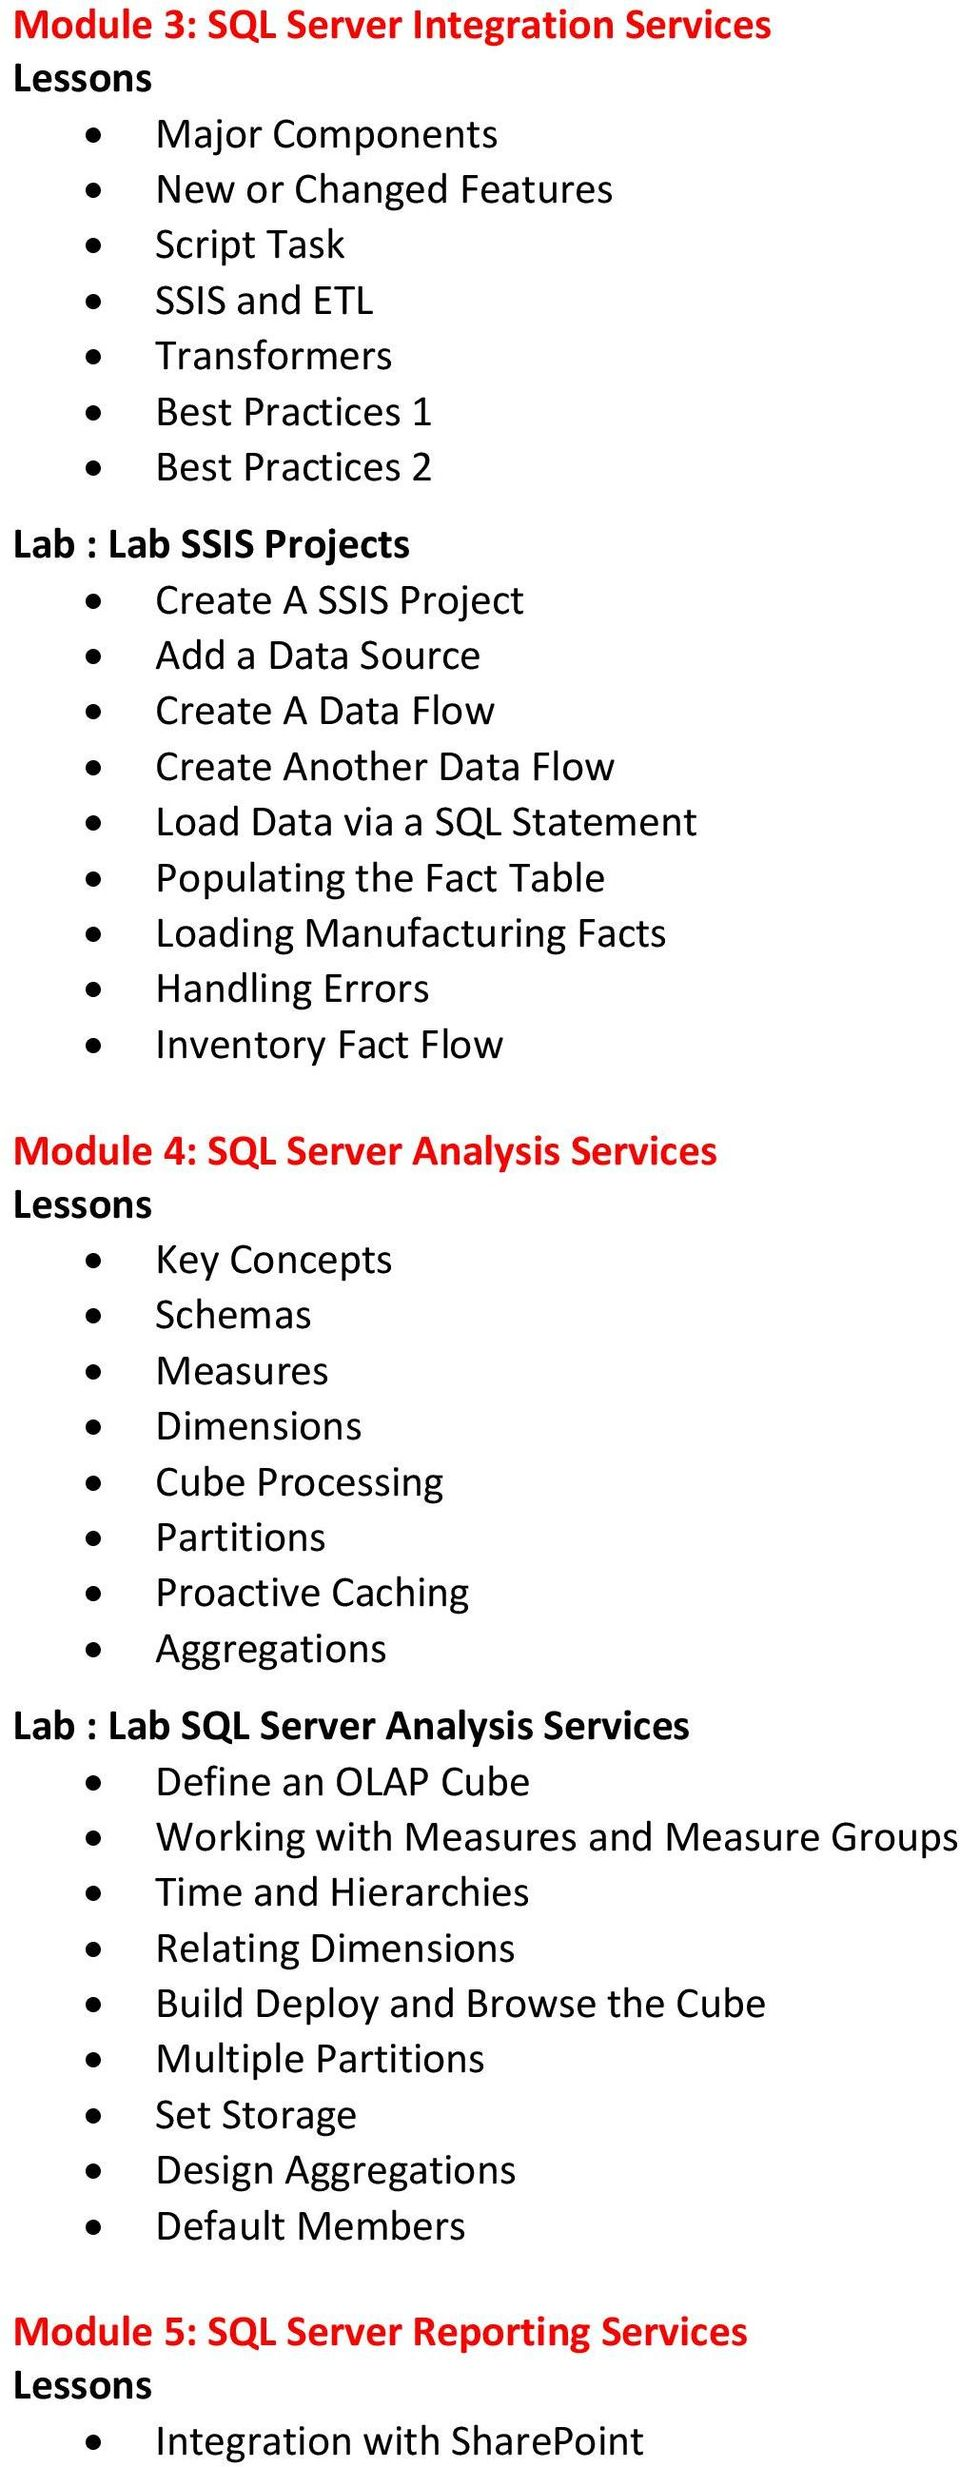 SQL Server Analysis Services Key Concepts Schemas Measures Dimensions Cube Processing Partitions Proactive Caching Aggregations Lab : Lab SQL Server Analysis Services Define an OLAP Cube Working with